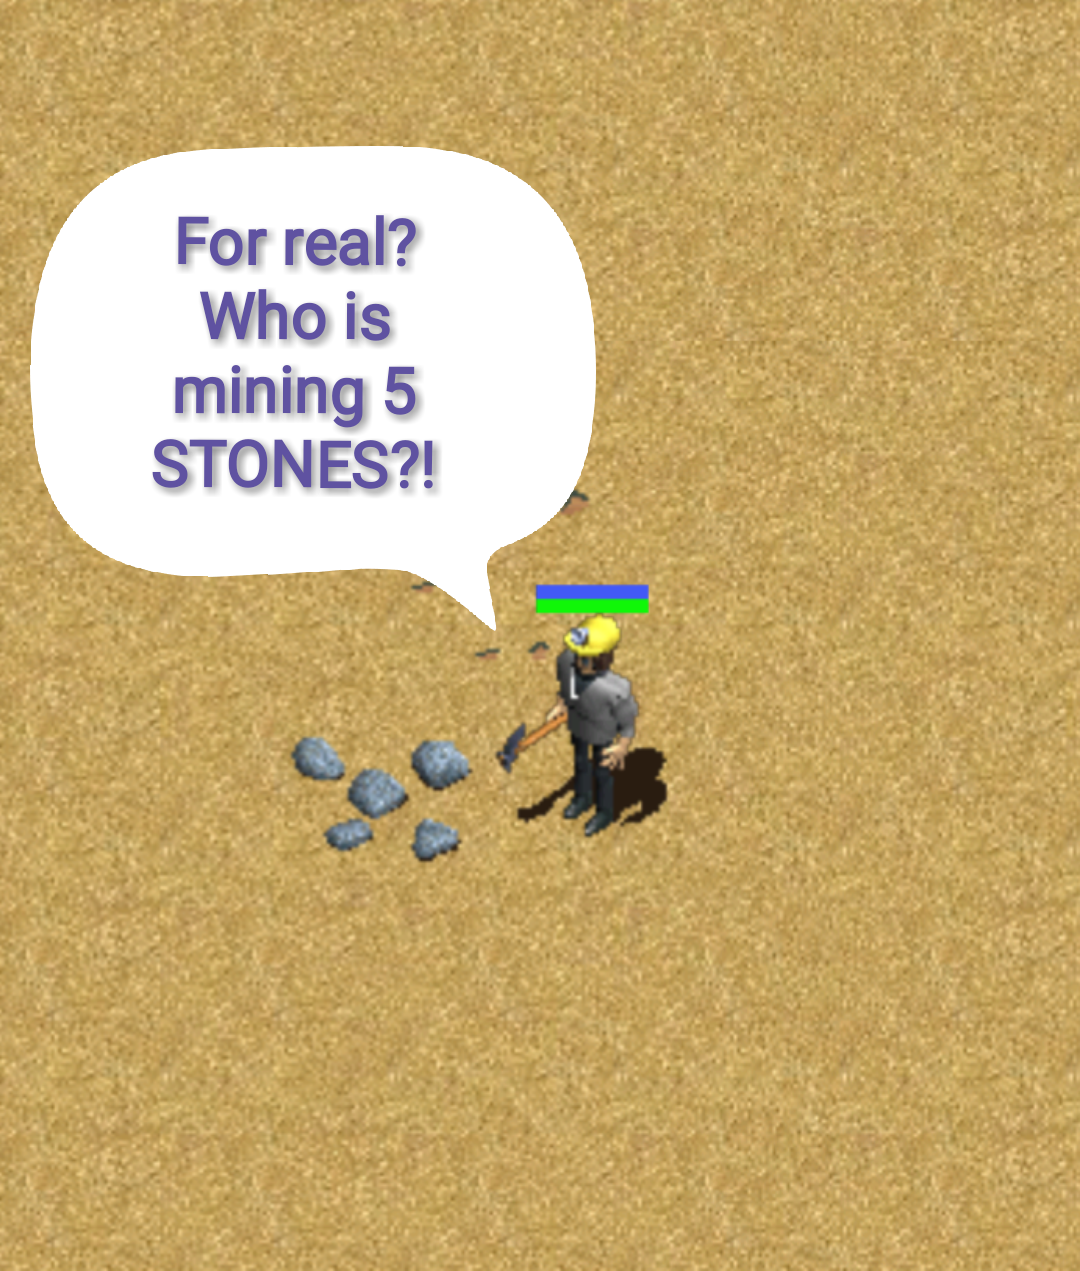 Taking stones from a stone...